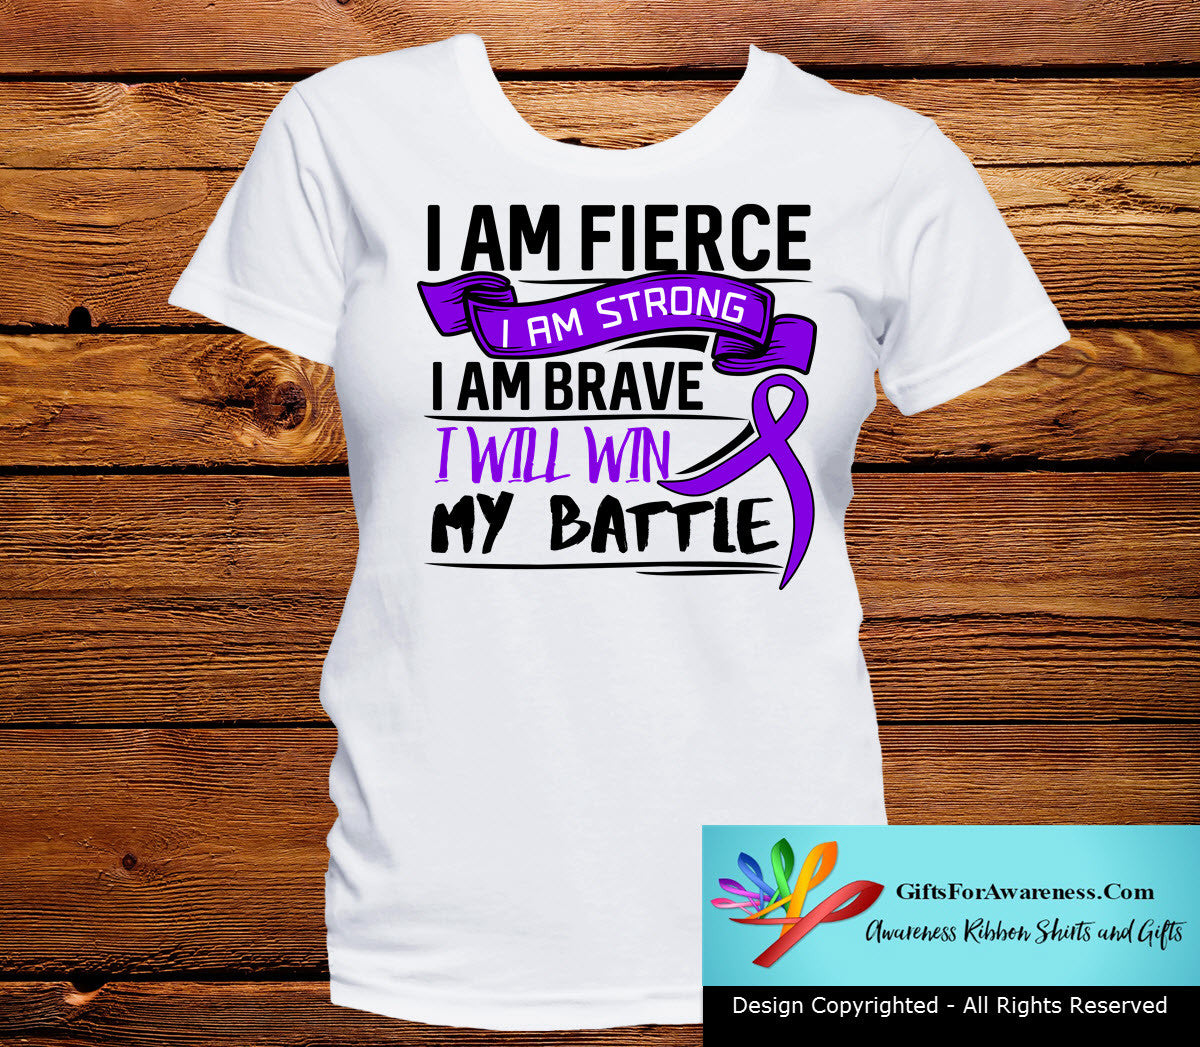 Epilepsy I Am Fierce Strong and Brave Shirts - GiftsForAwareness